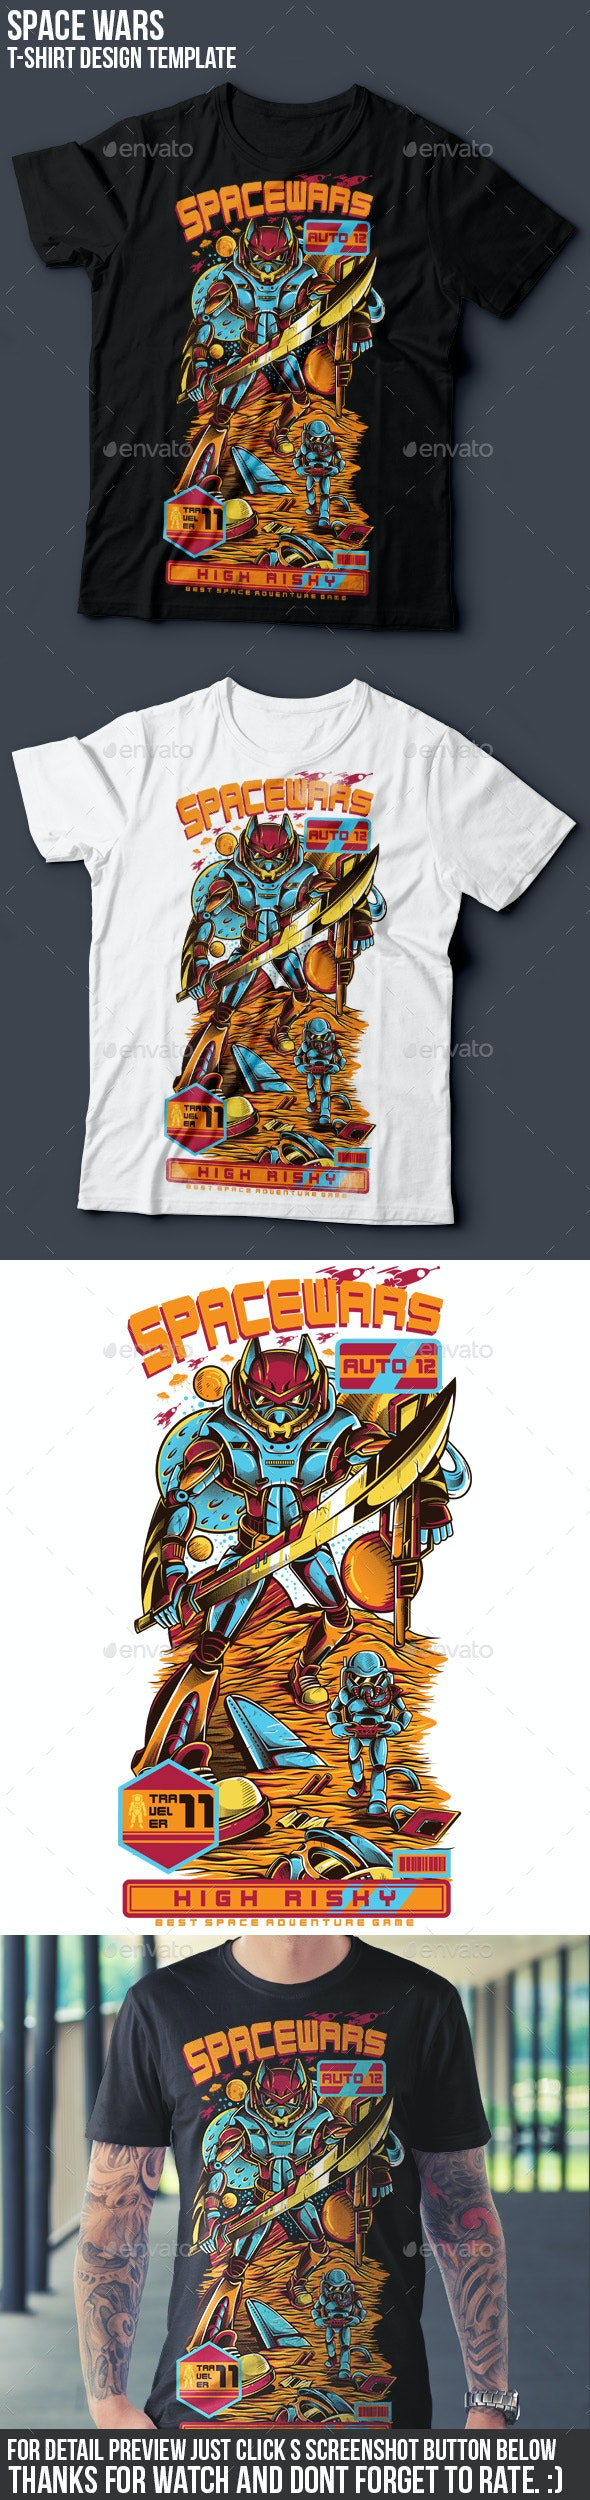 SpaceWars T-Shirt Design - Sports & Teams T-Shirts